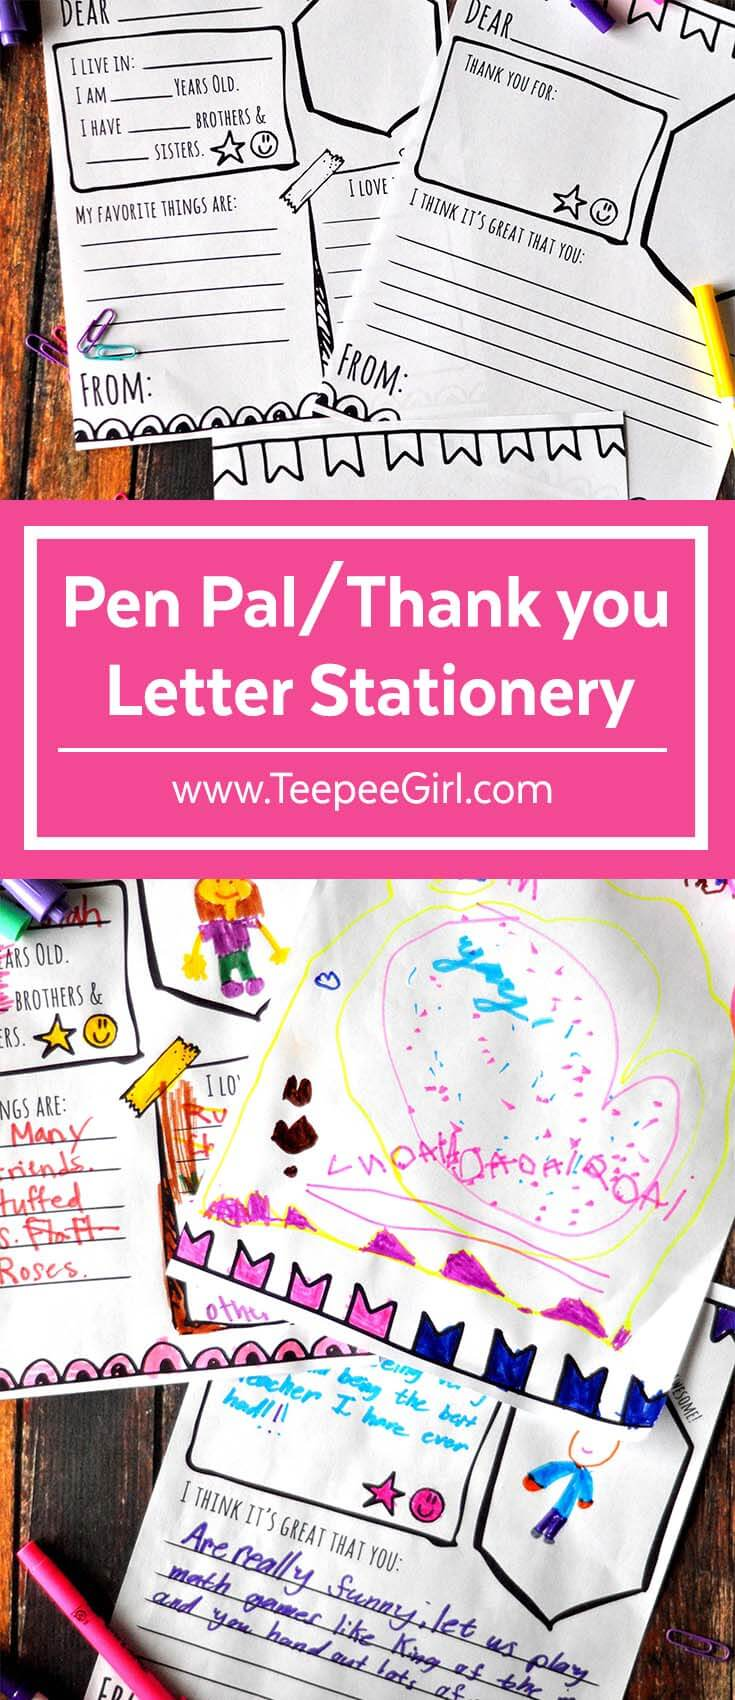 Use these pen pal and thank you letter stationery to write notes to friends, neighbors, and teachers. It's perfect for Activity Days or any other time you want to share gratitude and friendship! Download them today at www.TeepeeGirl.com.